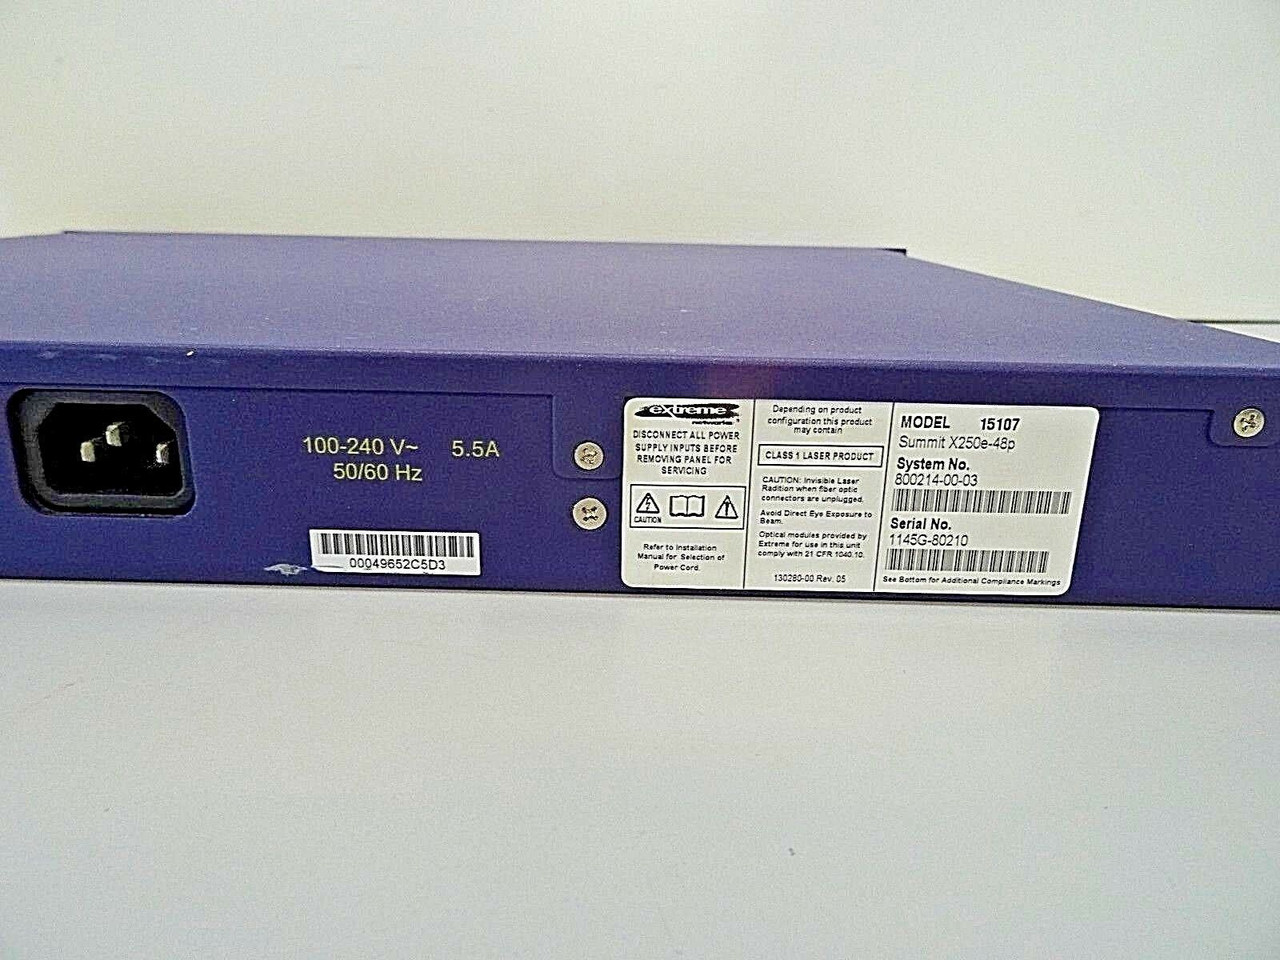 Extreme Networks Summit X250e-48p 48-Port Gigabit Switch PoE